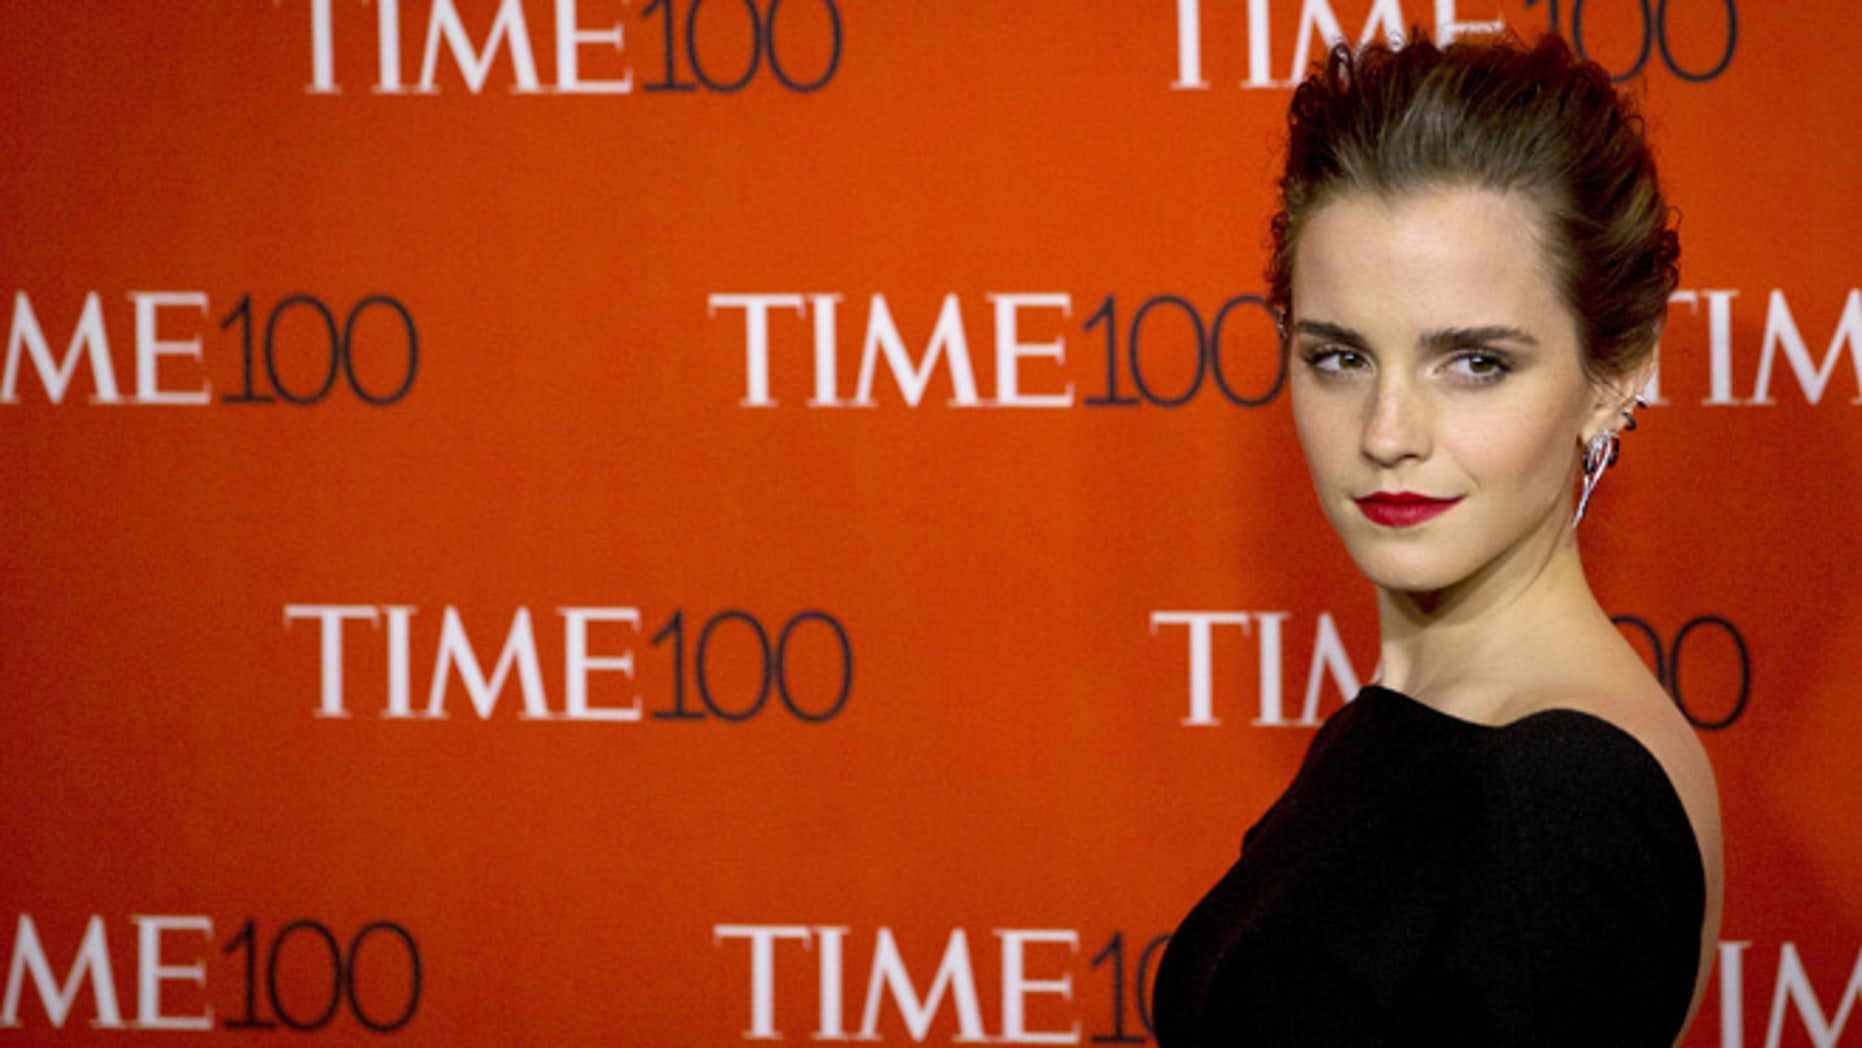 April 21, 2015. Actress Emma Watson arrives for the TIME 100 Gala in New York.